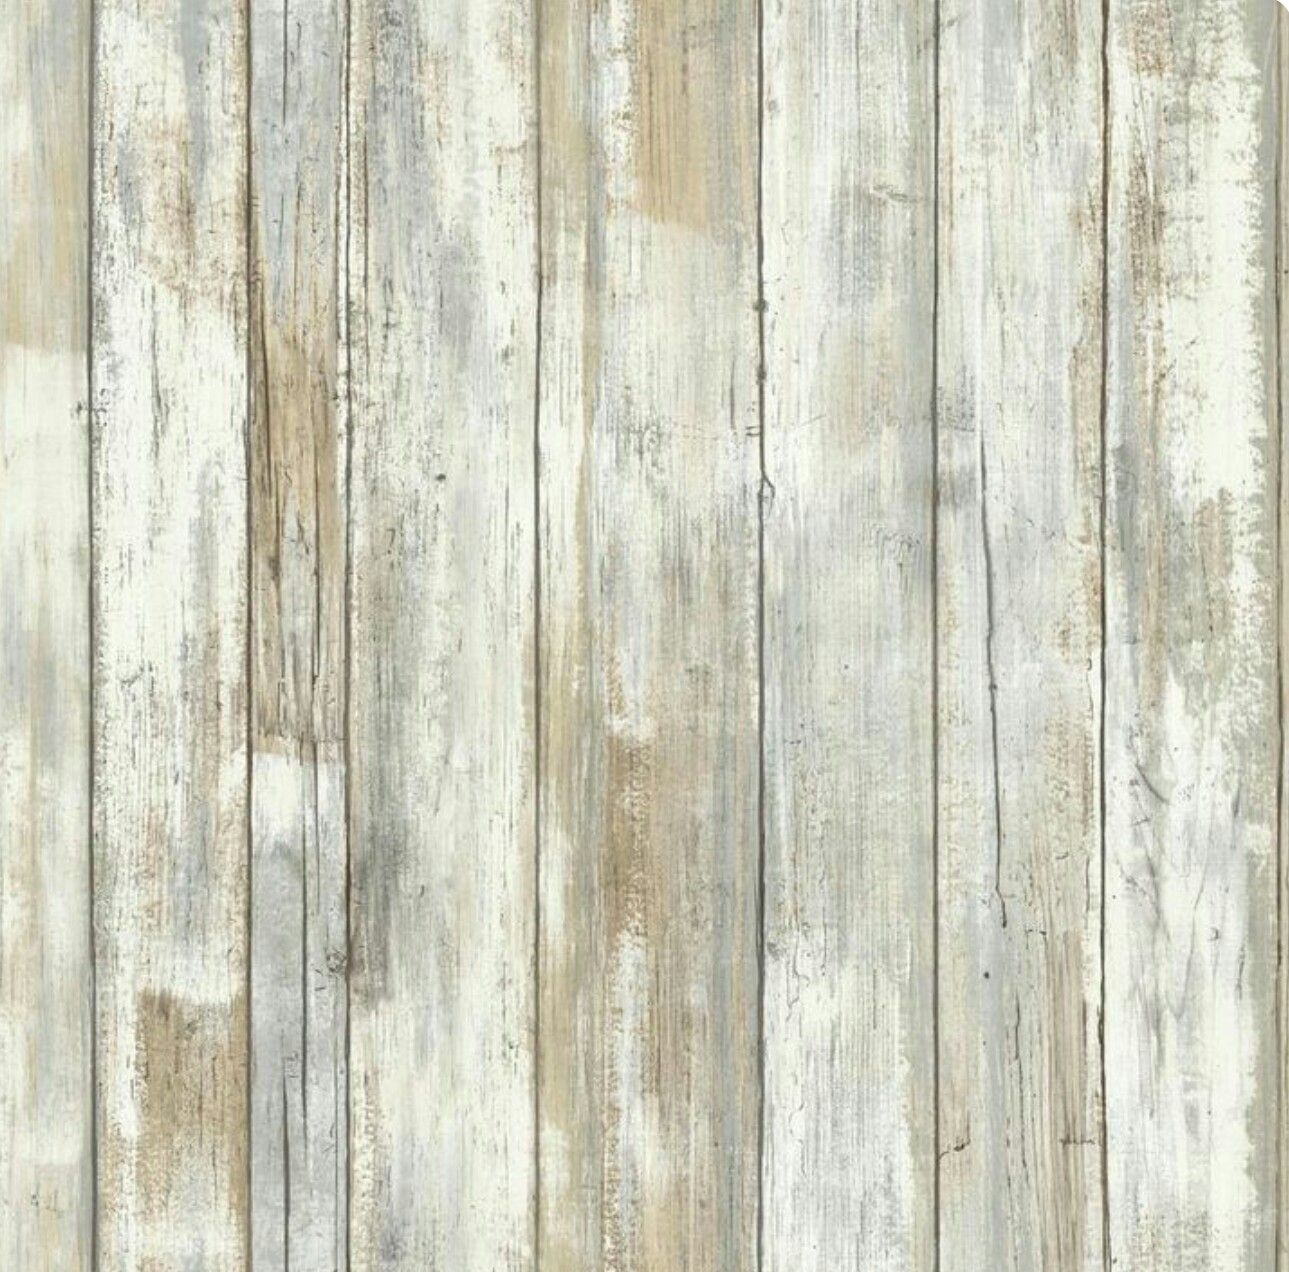 Turn Paneling Into Faux Weathered Wood By Using White